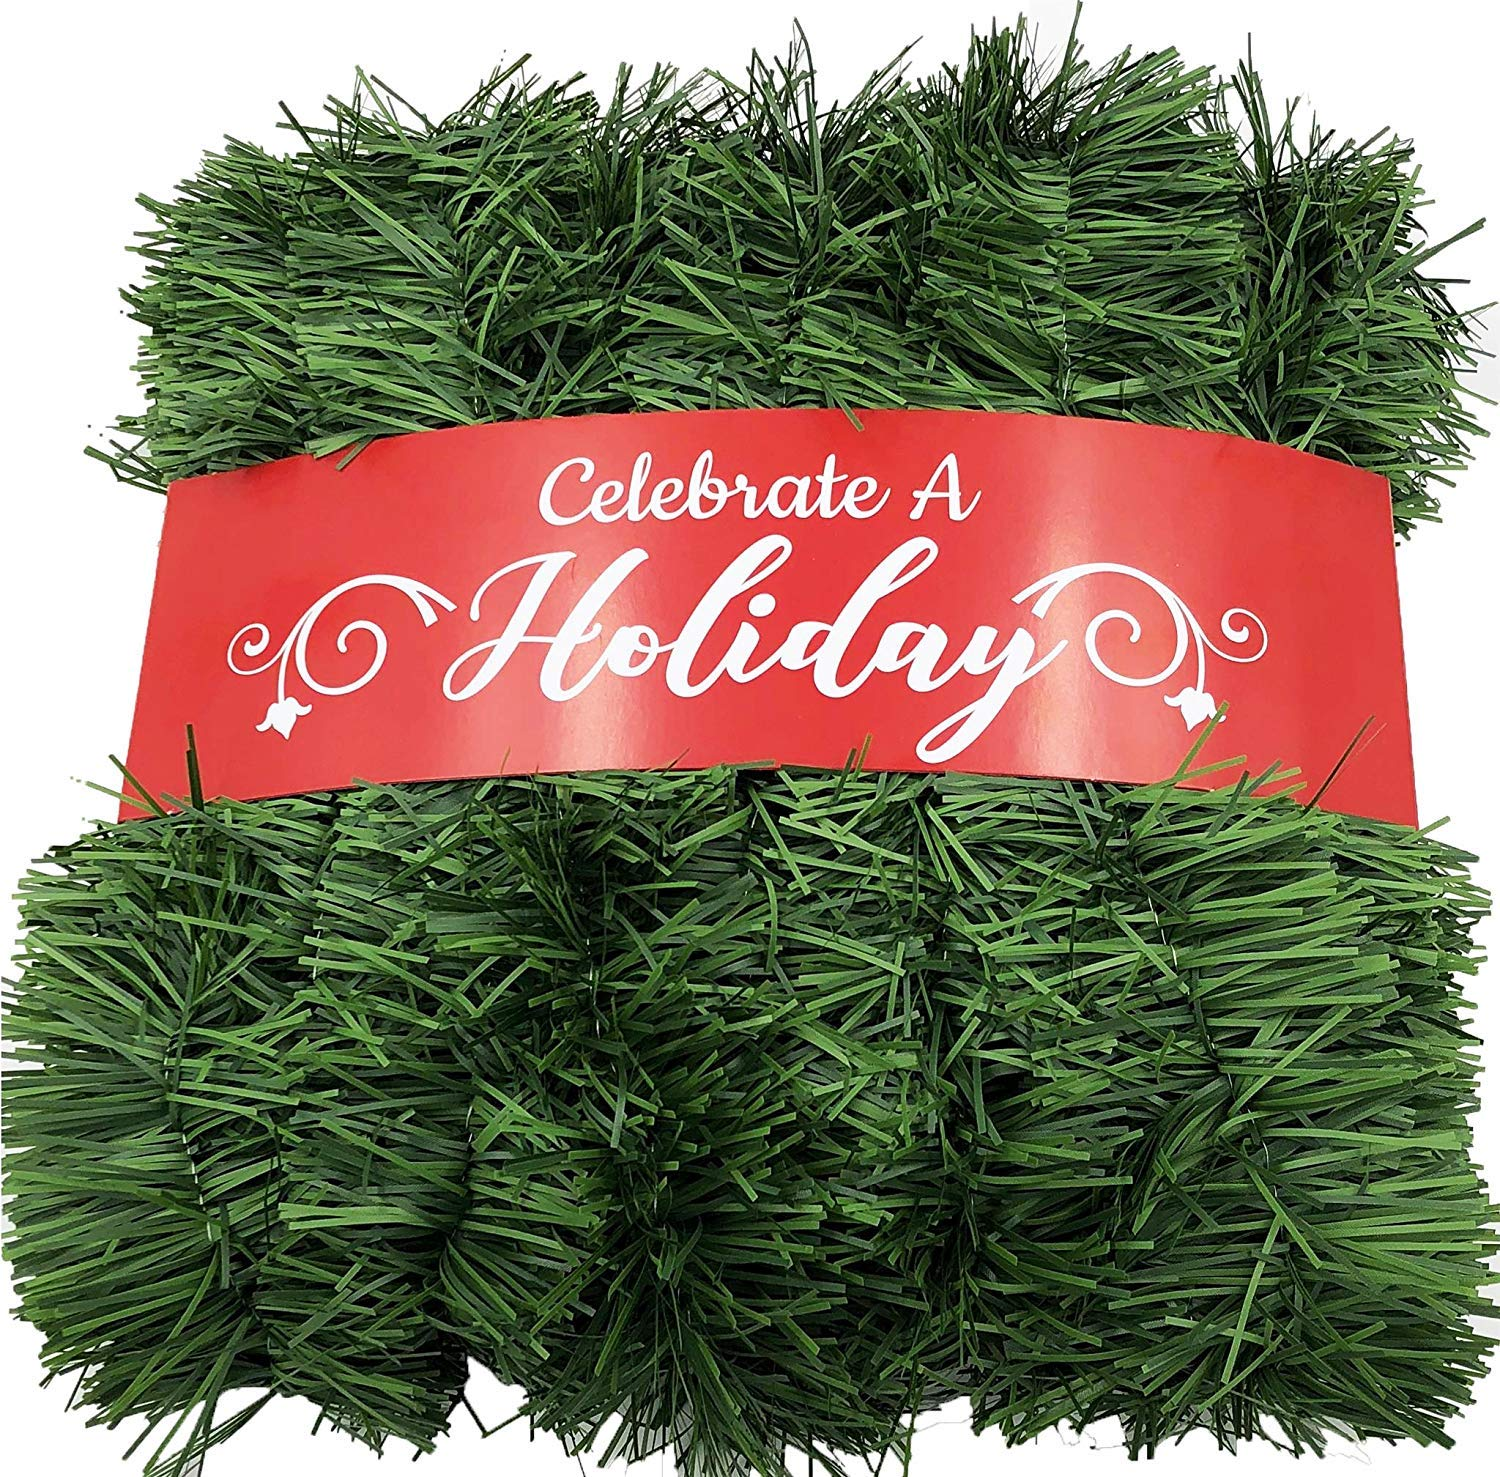 50 Foot Garland for Christmas Decorations - Non-Lit Soft Green Holiday Decor for Outdoor or Indoor Use - Premium Quality Home Garden Artificial Greenery, or Wedding Party Decorations (Pack of 1)